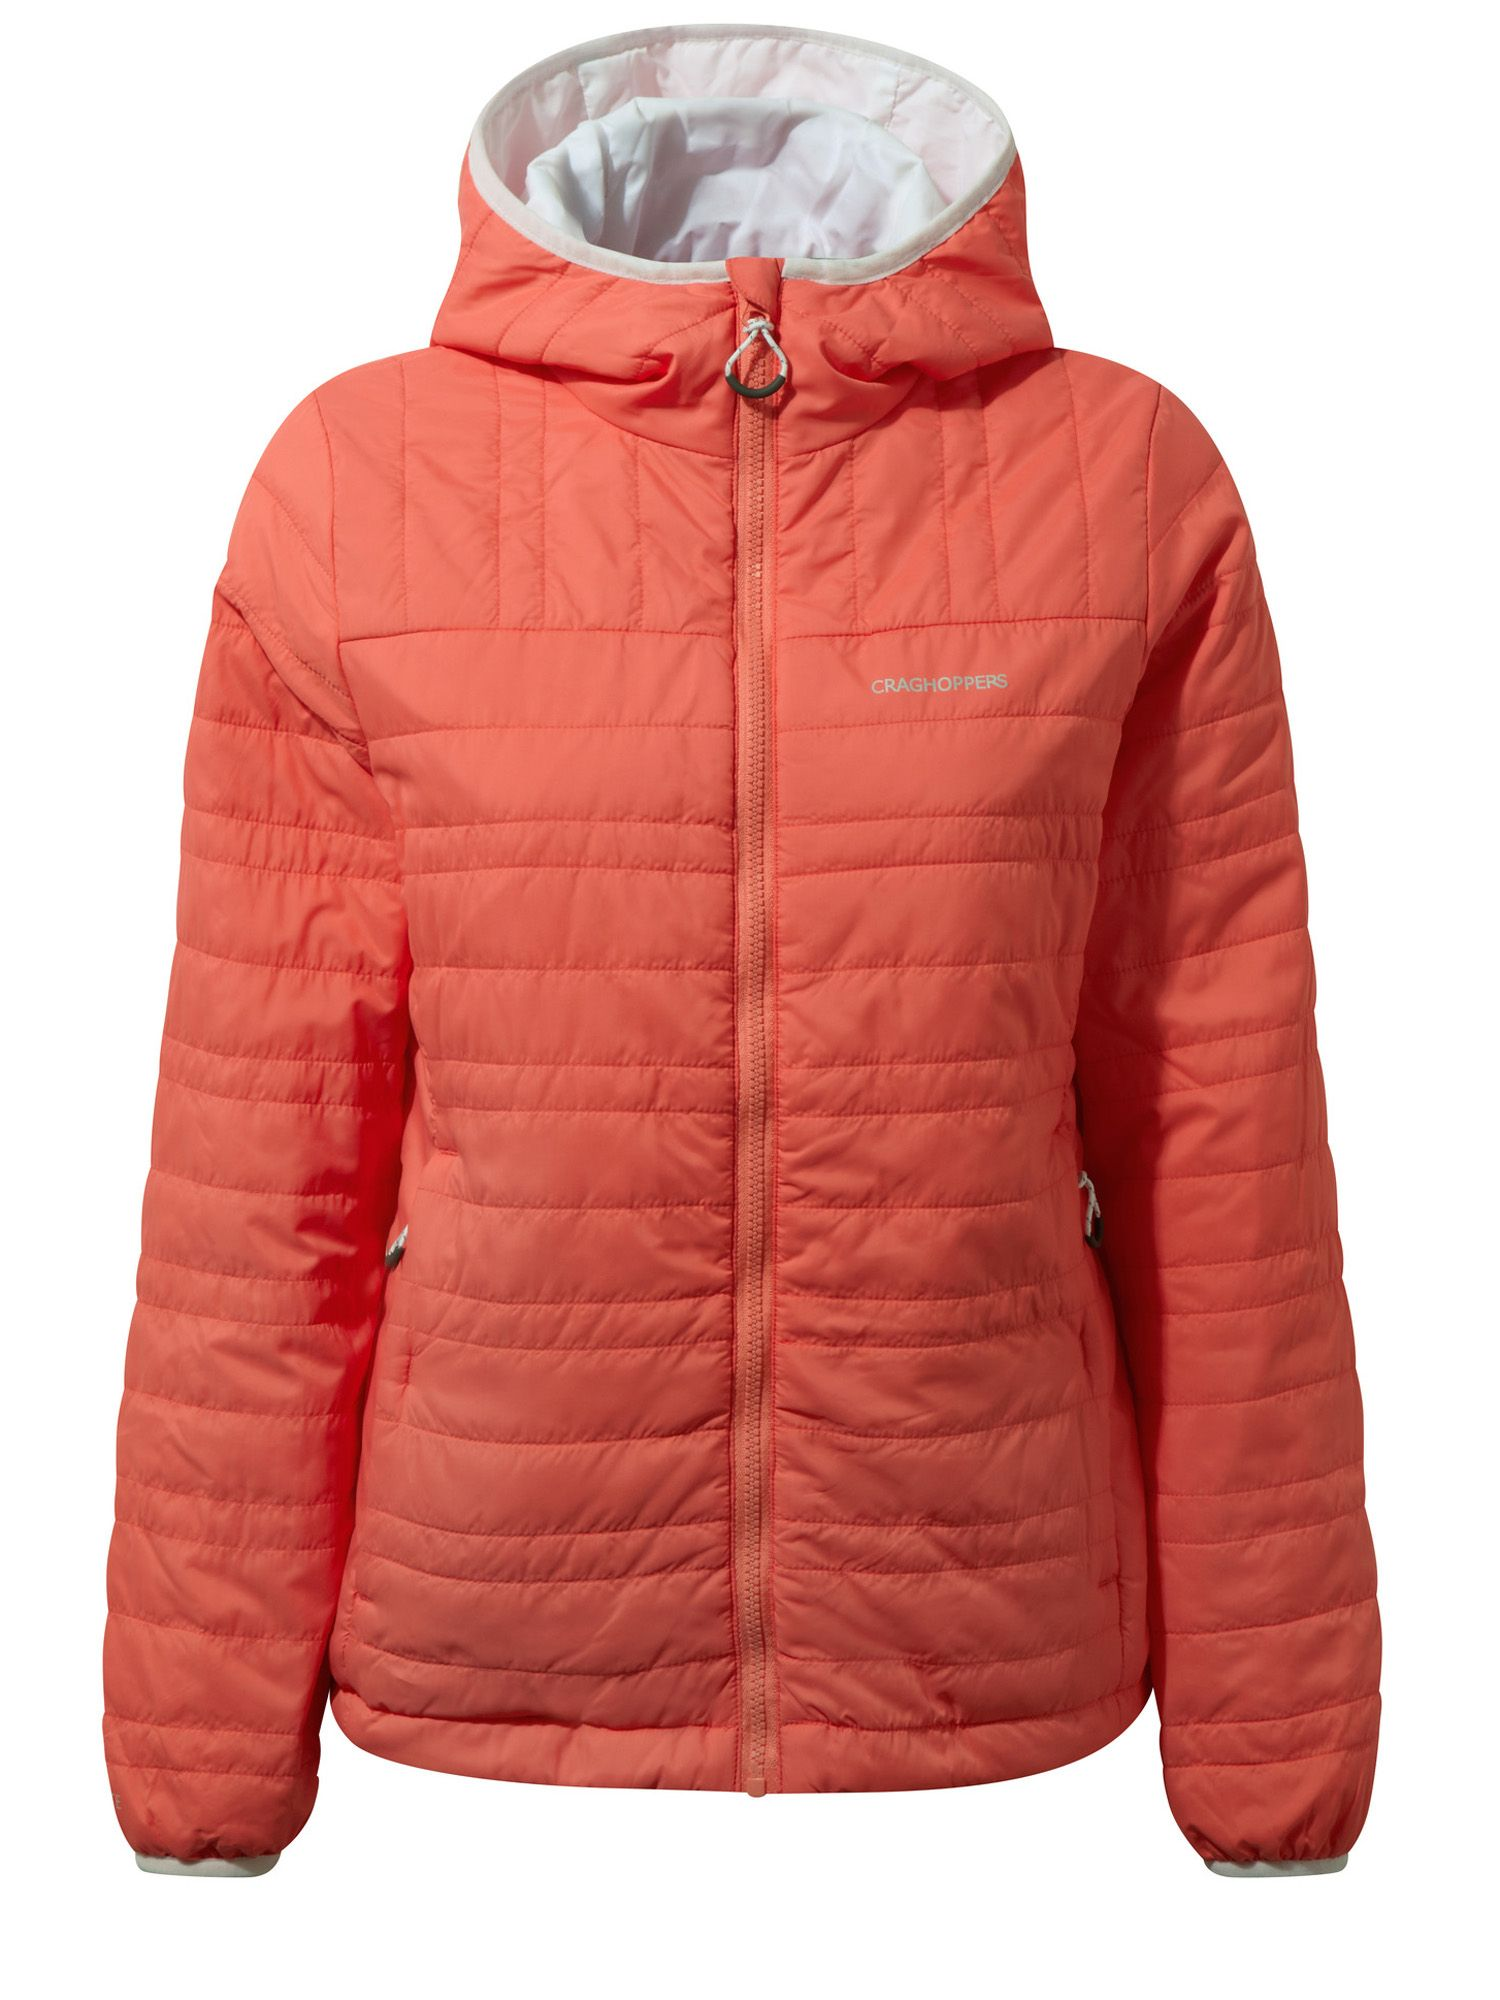 Craghoppers CompressLite Lightweight Jacket II, Orange